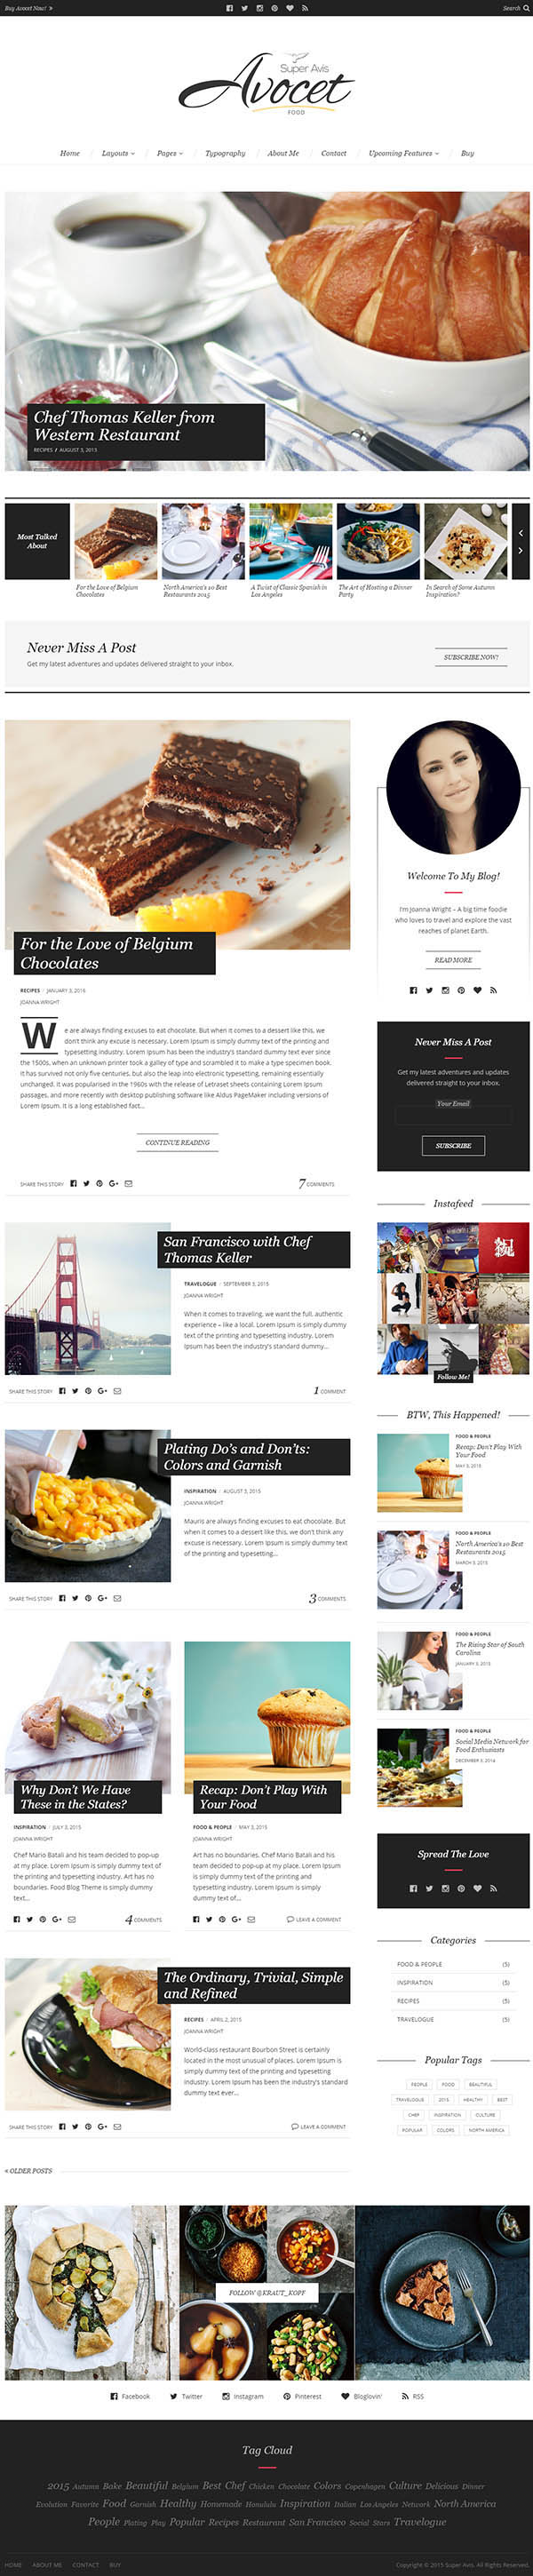 Avocet - Responsive WordPress Blog Theme